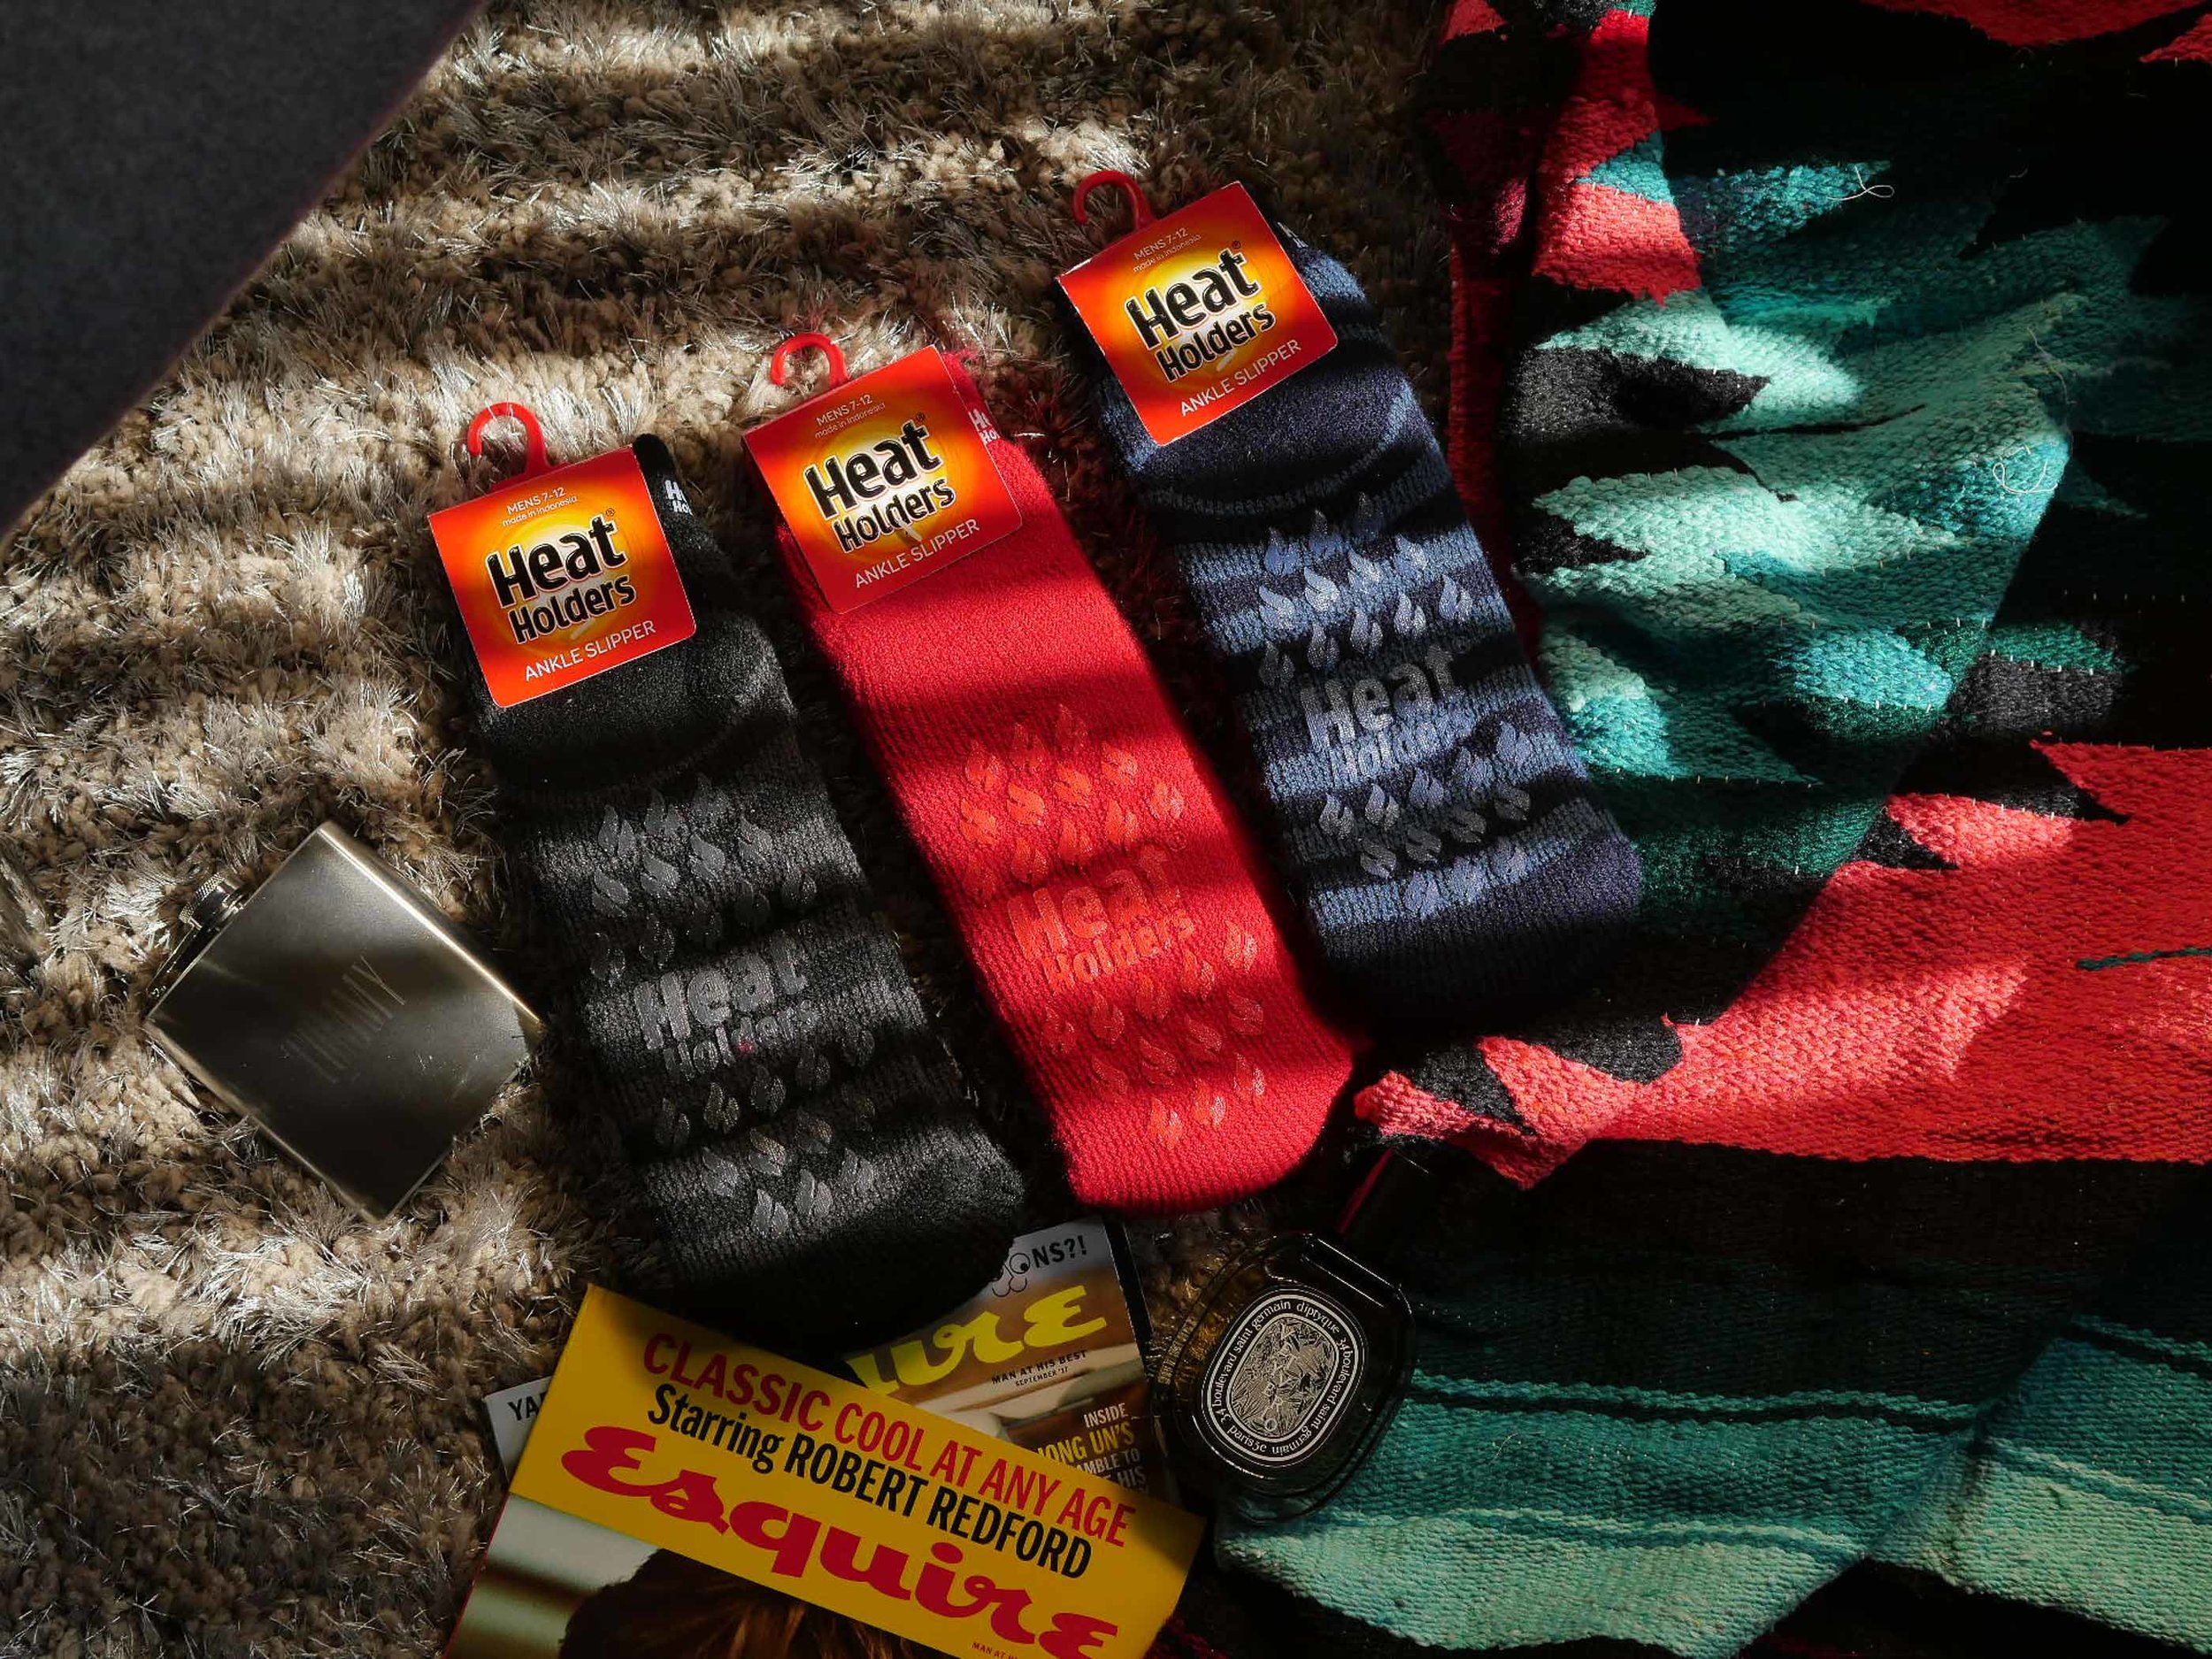 Heat Holders Signature Thermal Socks -